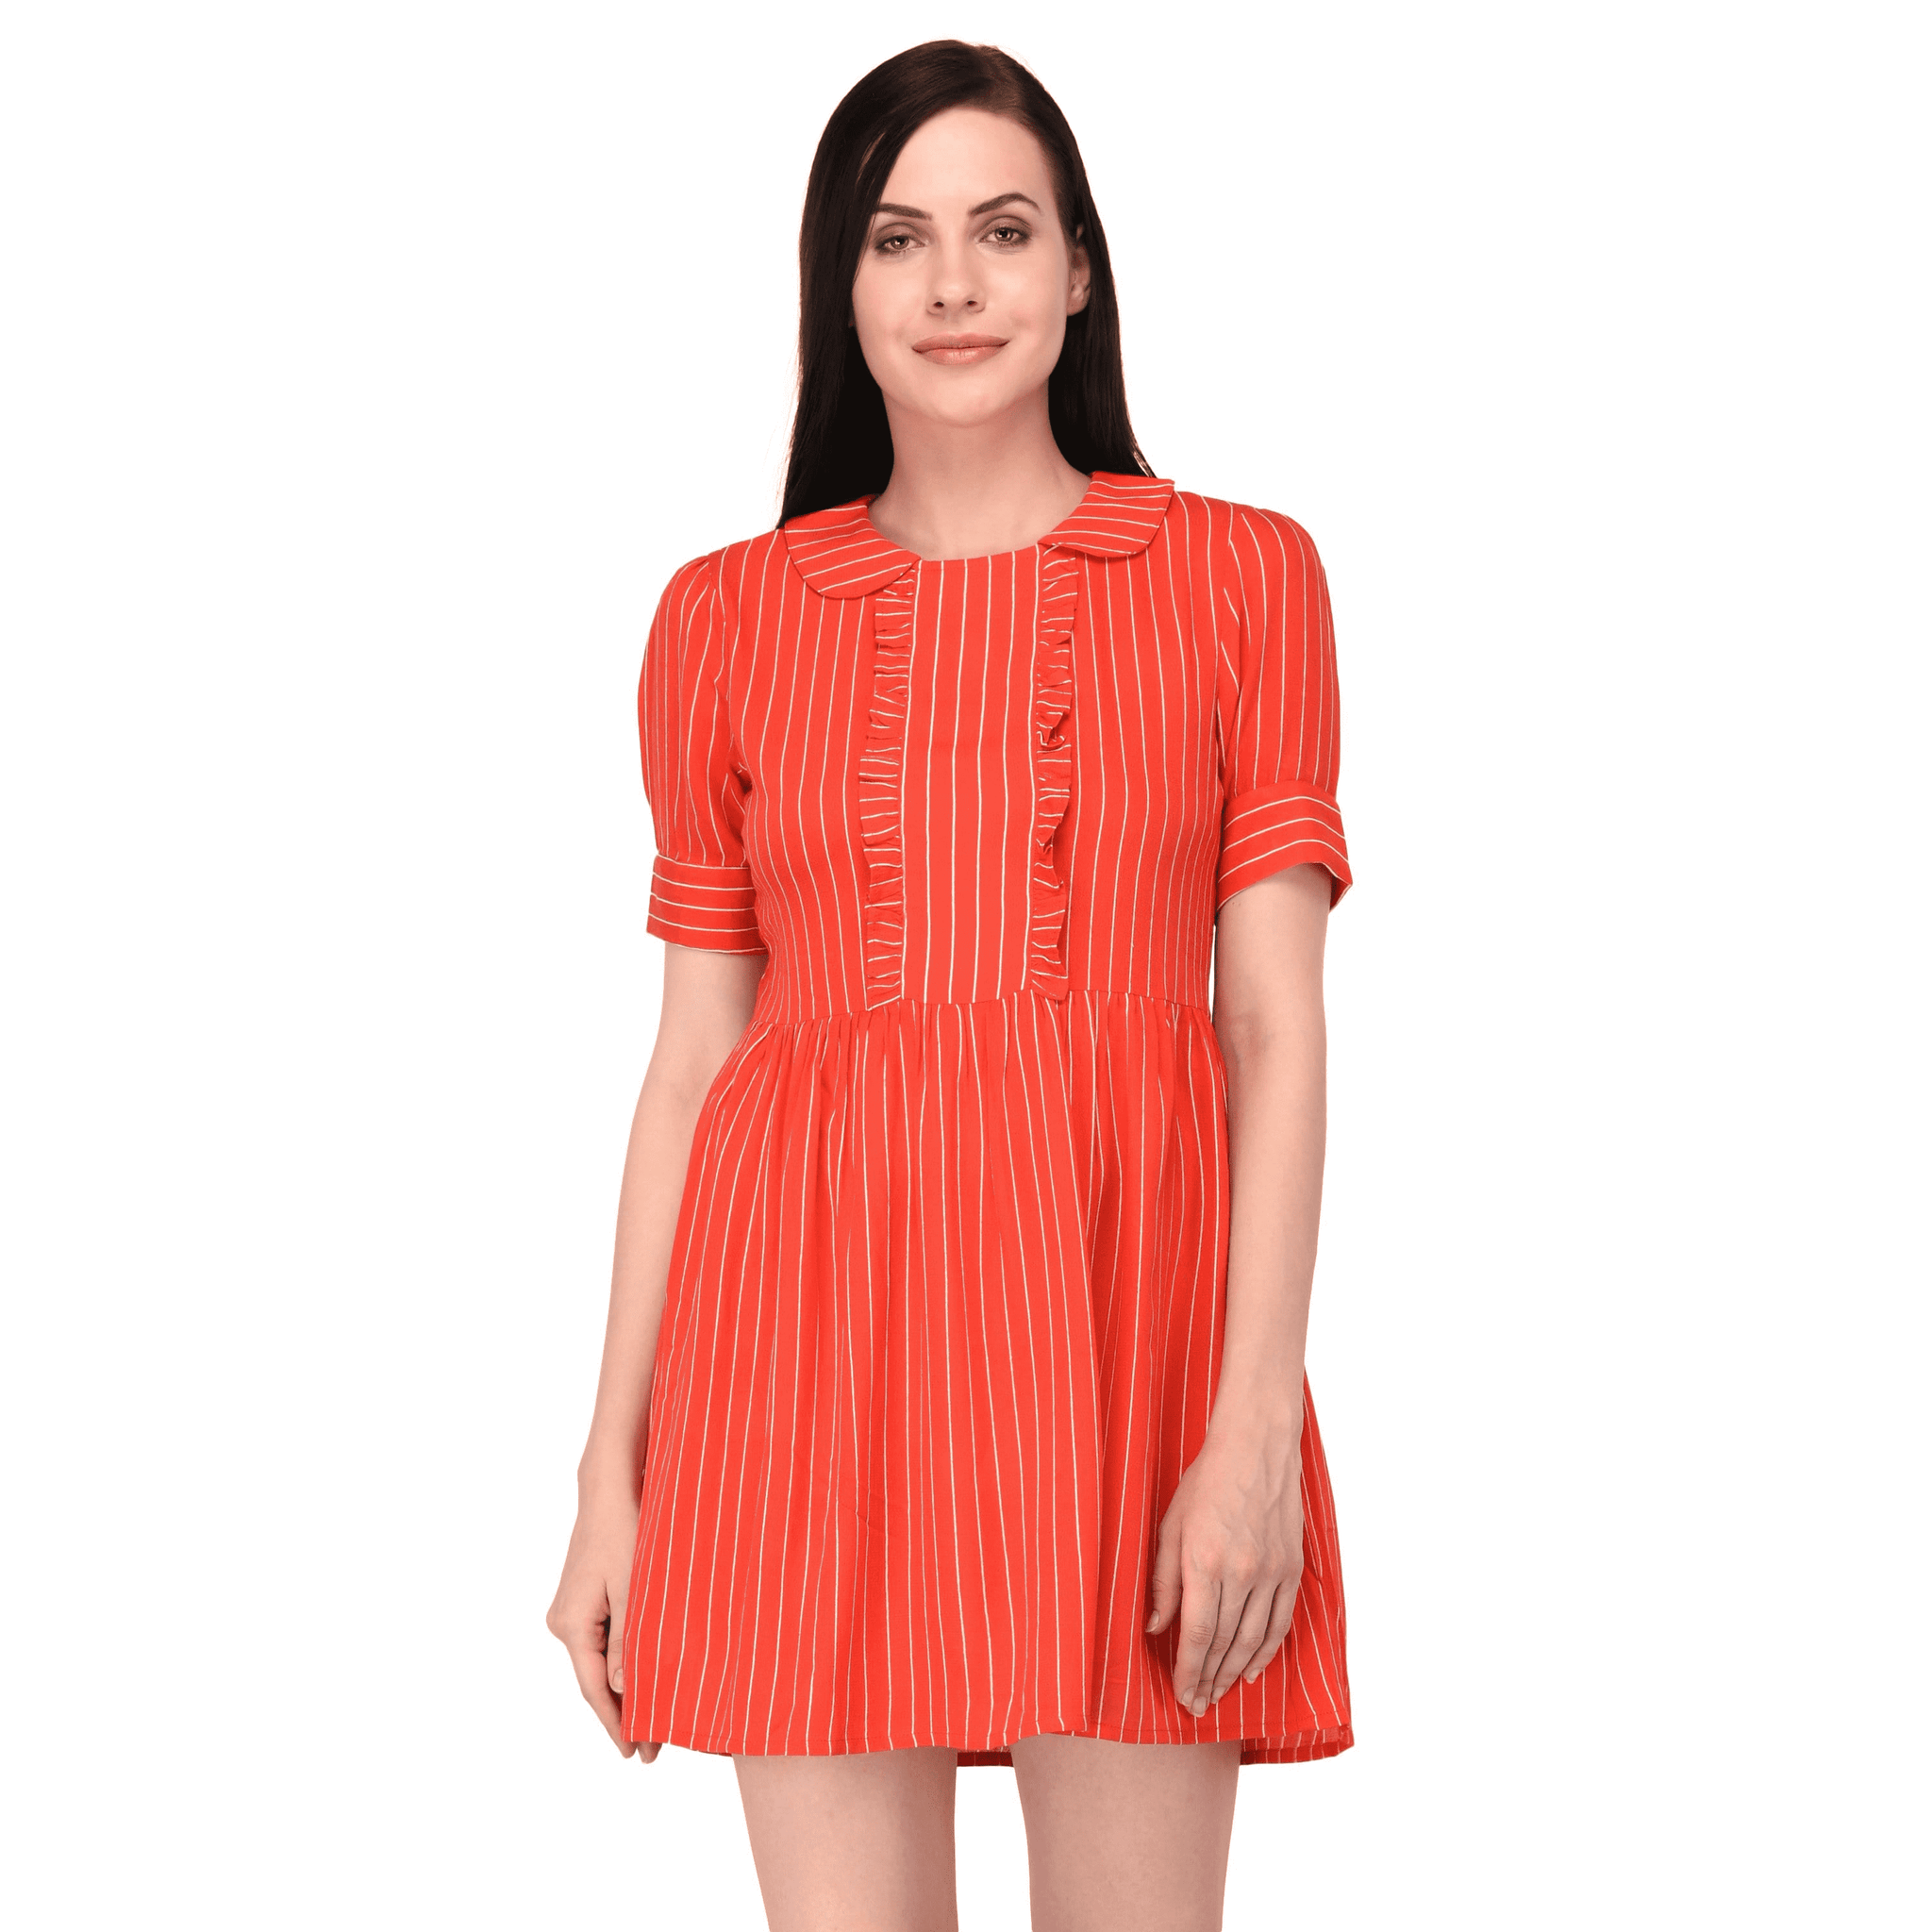 Stripe Ruffle Dress Red - NIXX Clothing